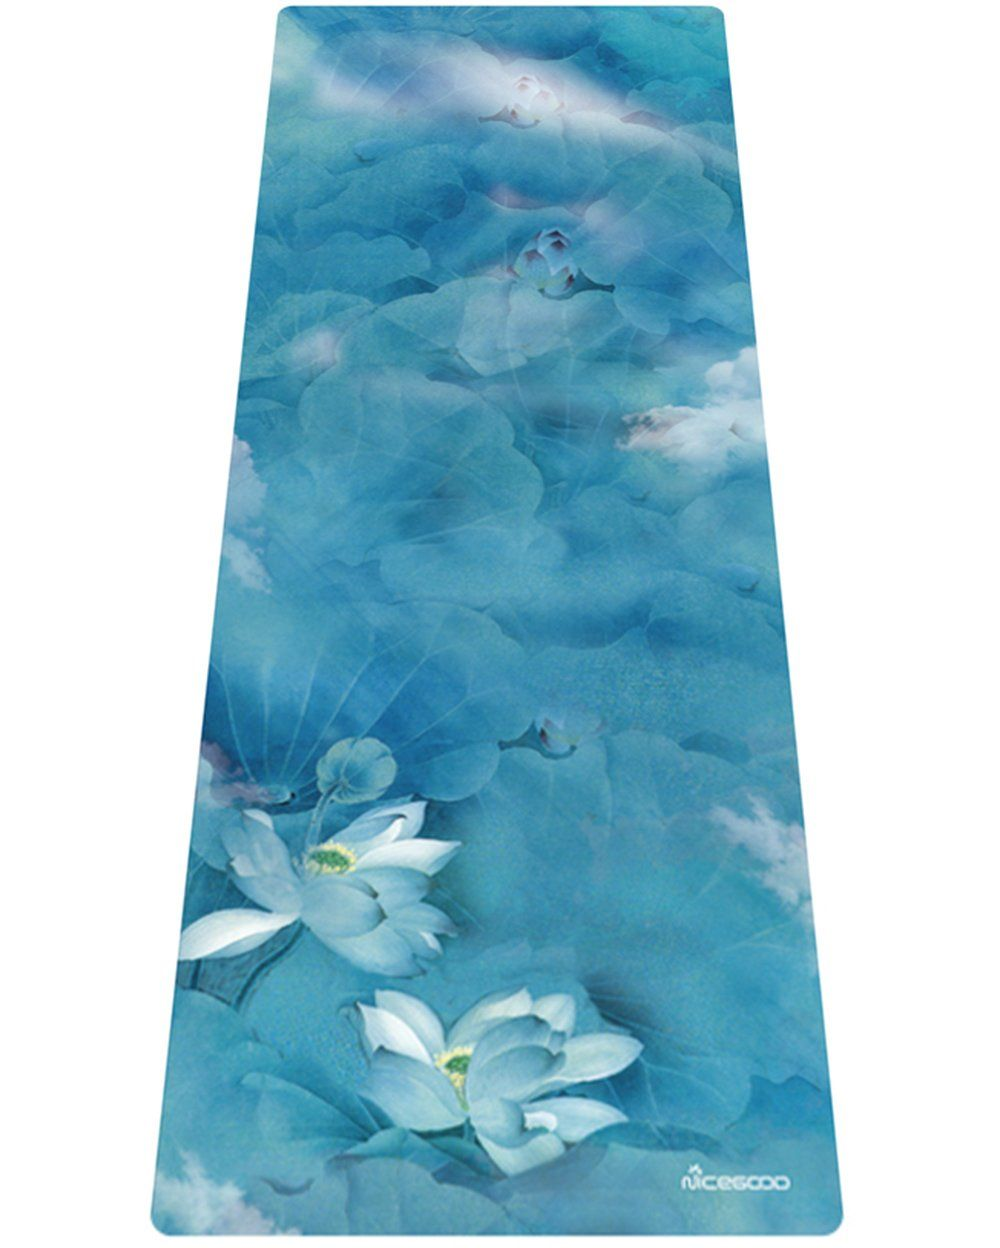 Aflower Printed Yoga Mat Nonslip 1 8inch Thick Made From Eco Friendly Natural Rubber With Carrying Bag And Strap You Can Get Print Yoga Mat Yoga Mat Prints